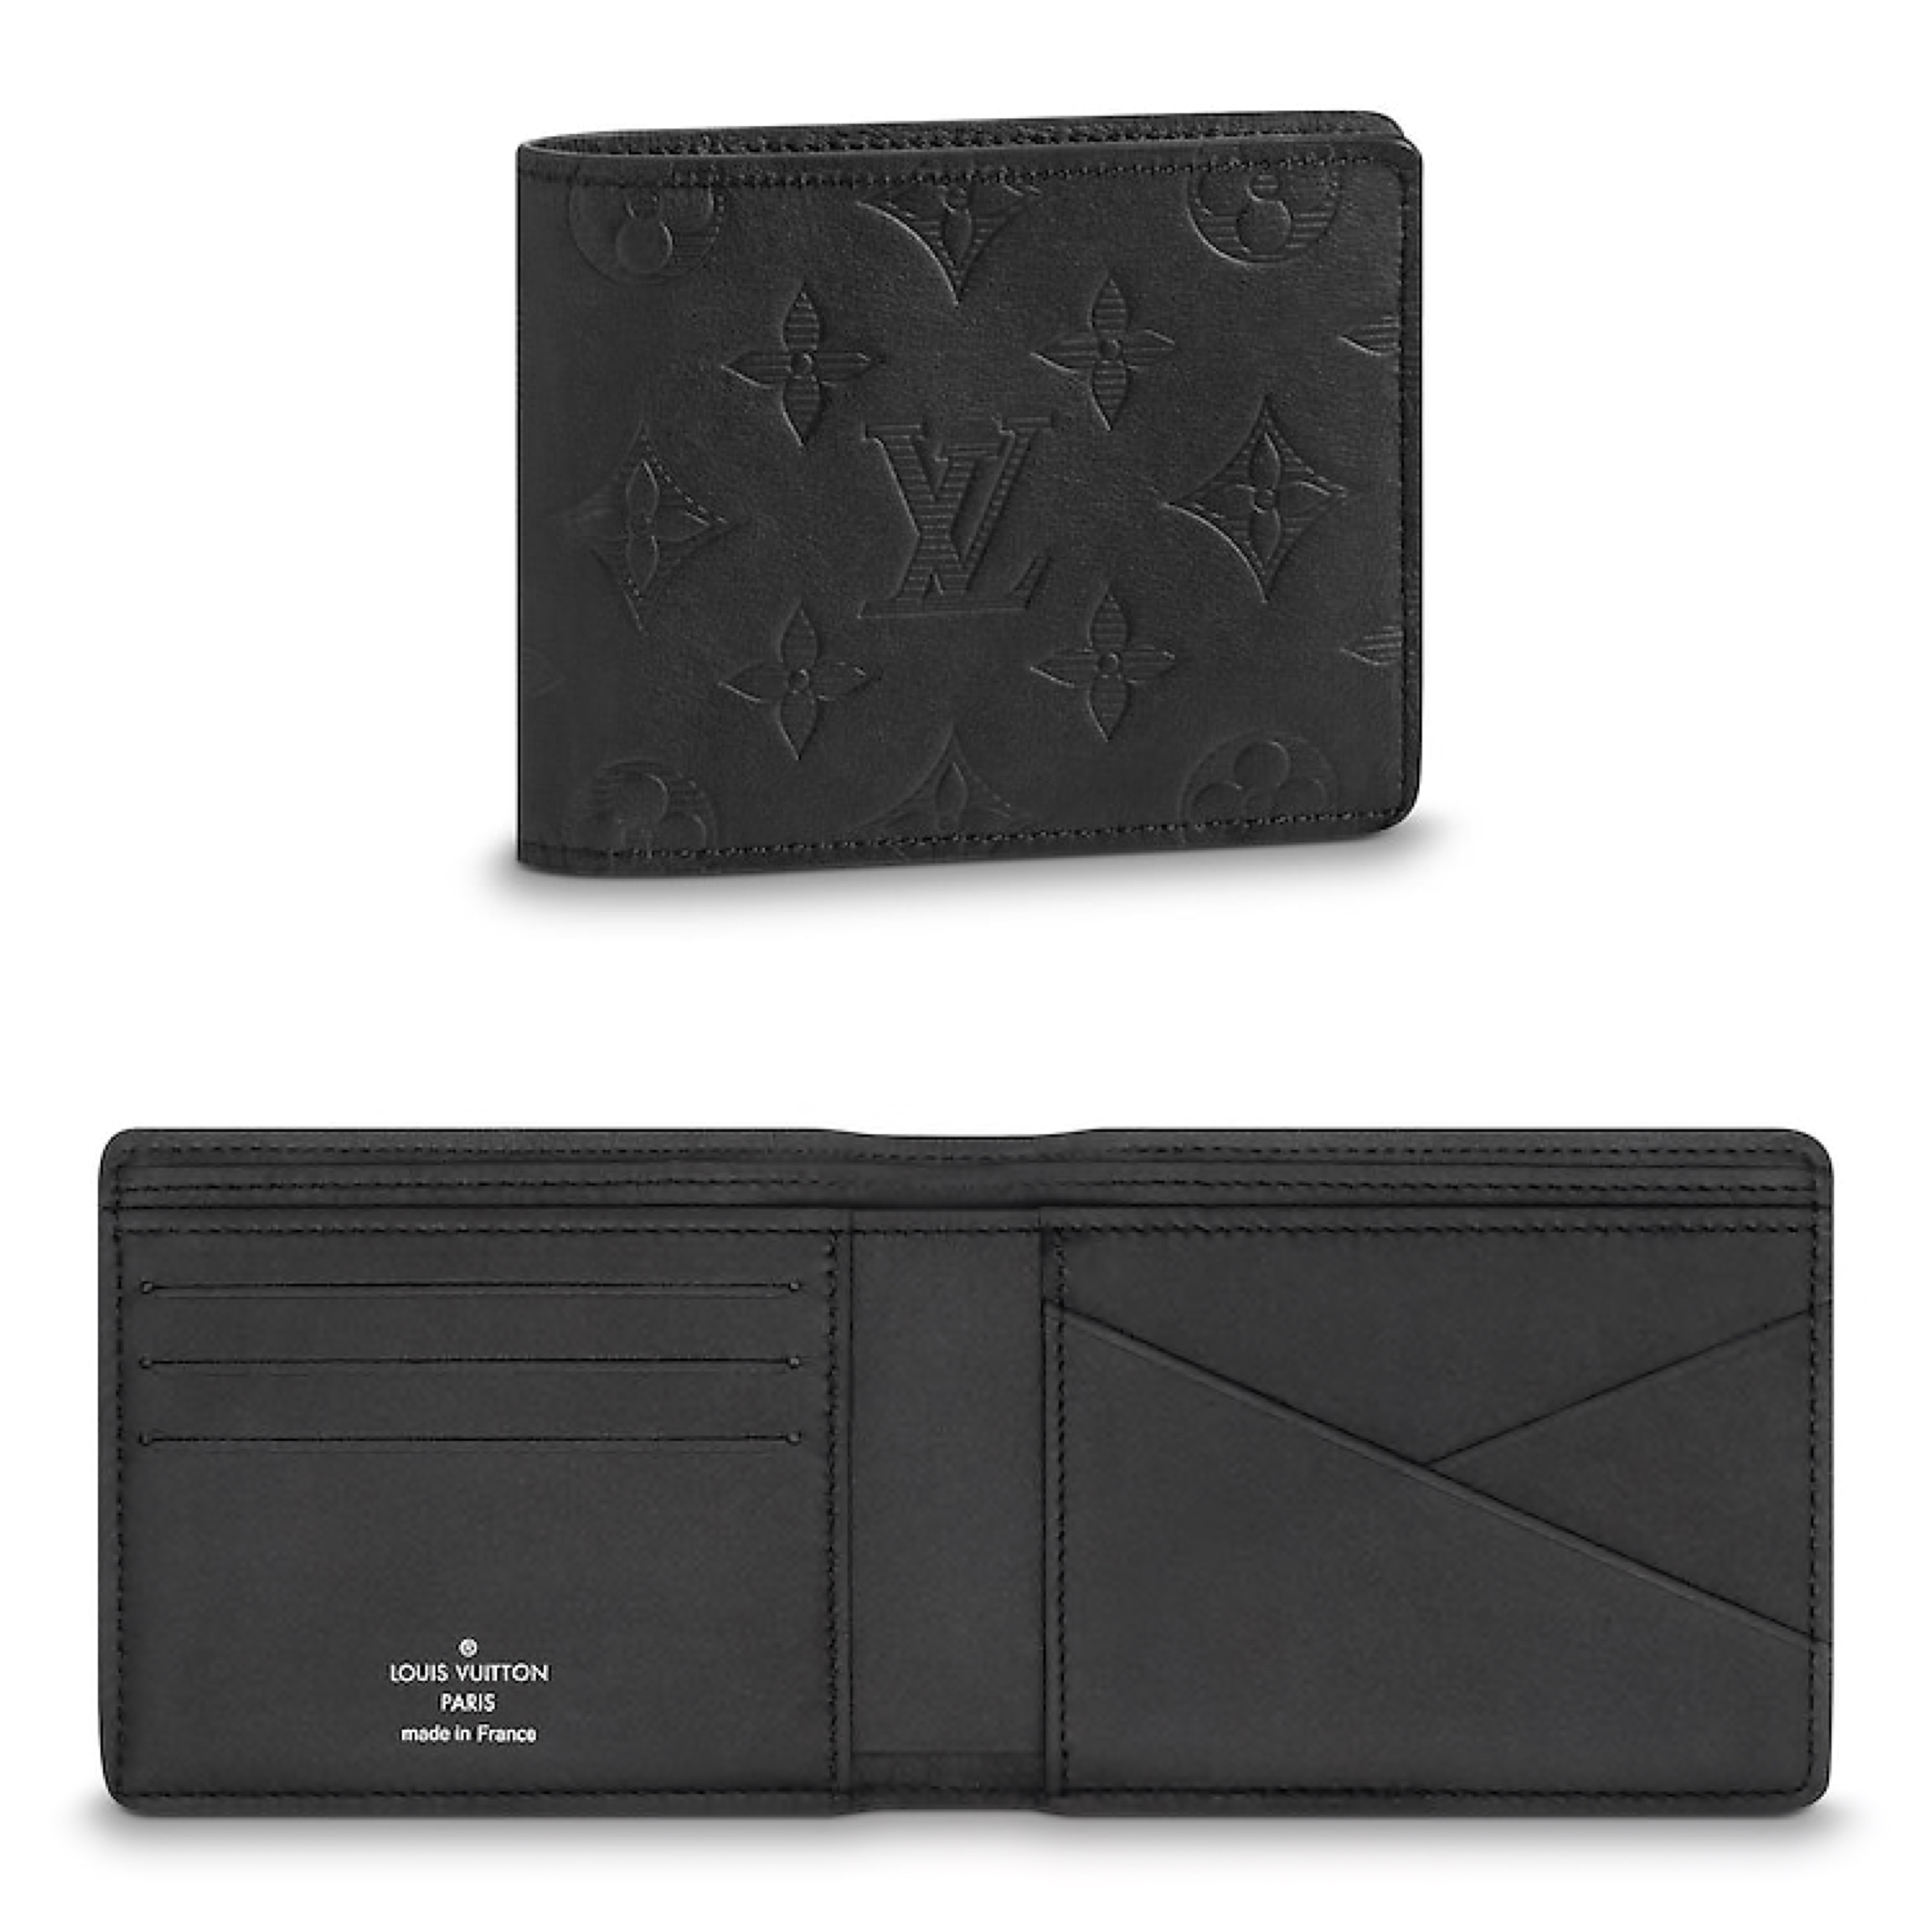 MULTIPLE WALLET ヴィトン 折りたたみ財布 国内発送 2018AW (Louis Vuitton/折りたたみ財布) 35677491